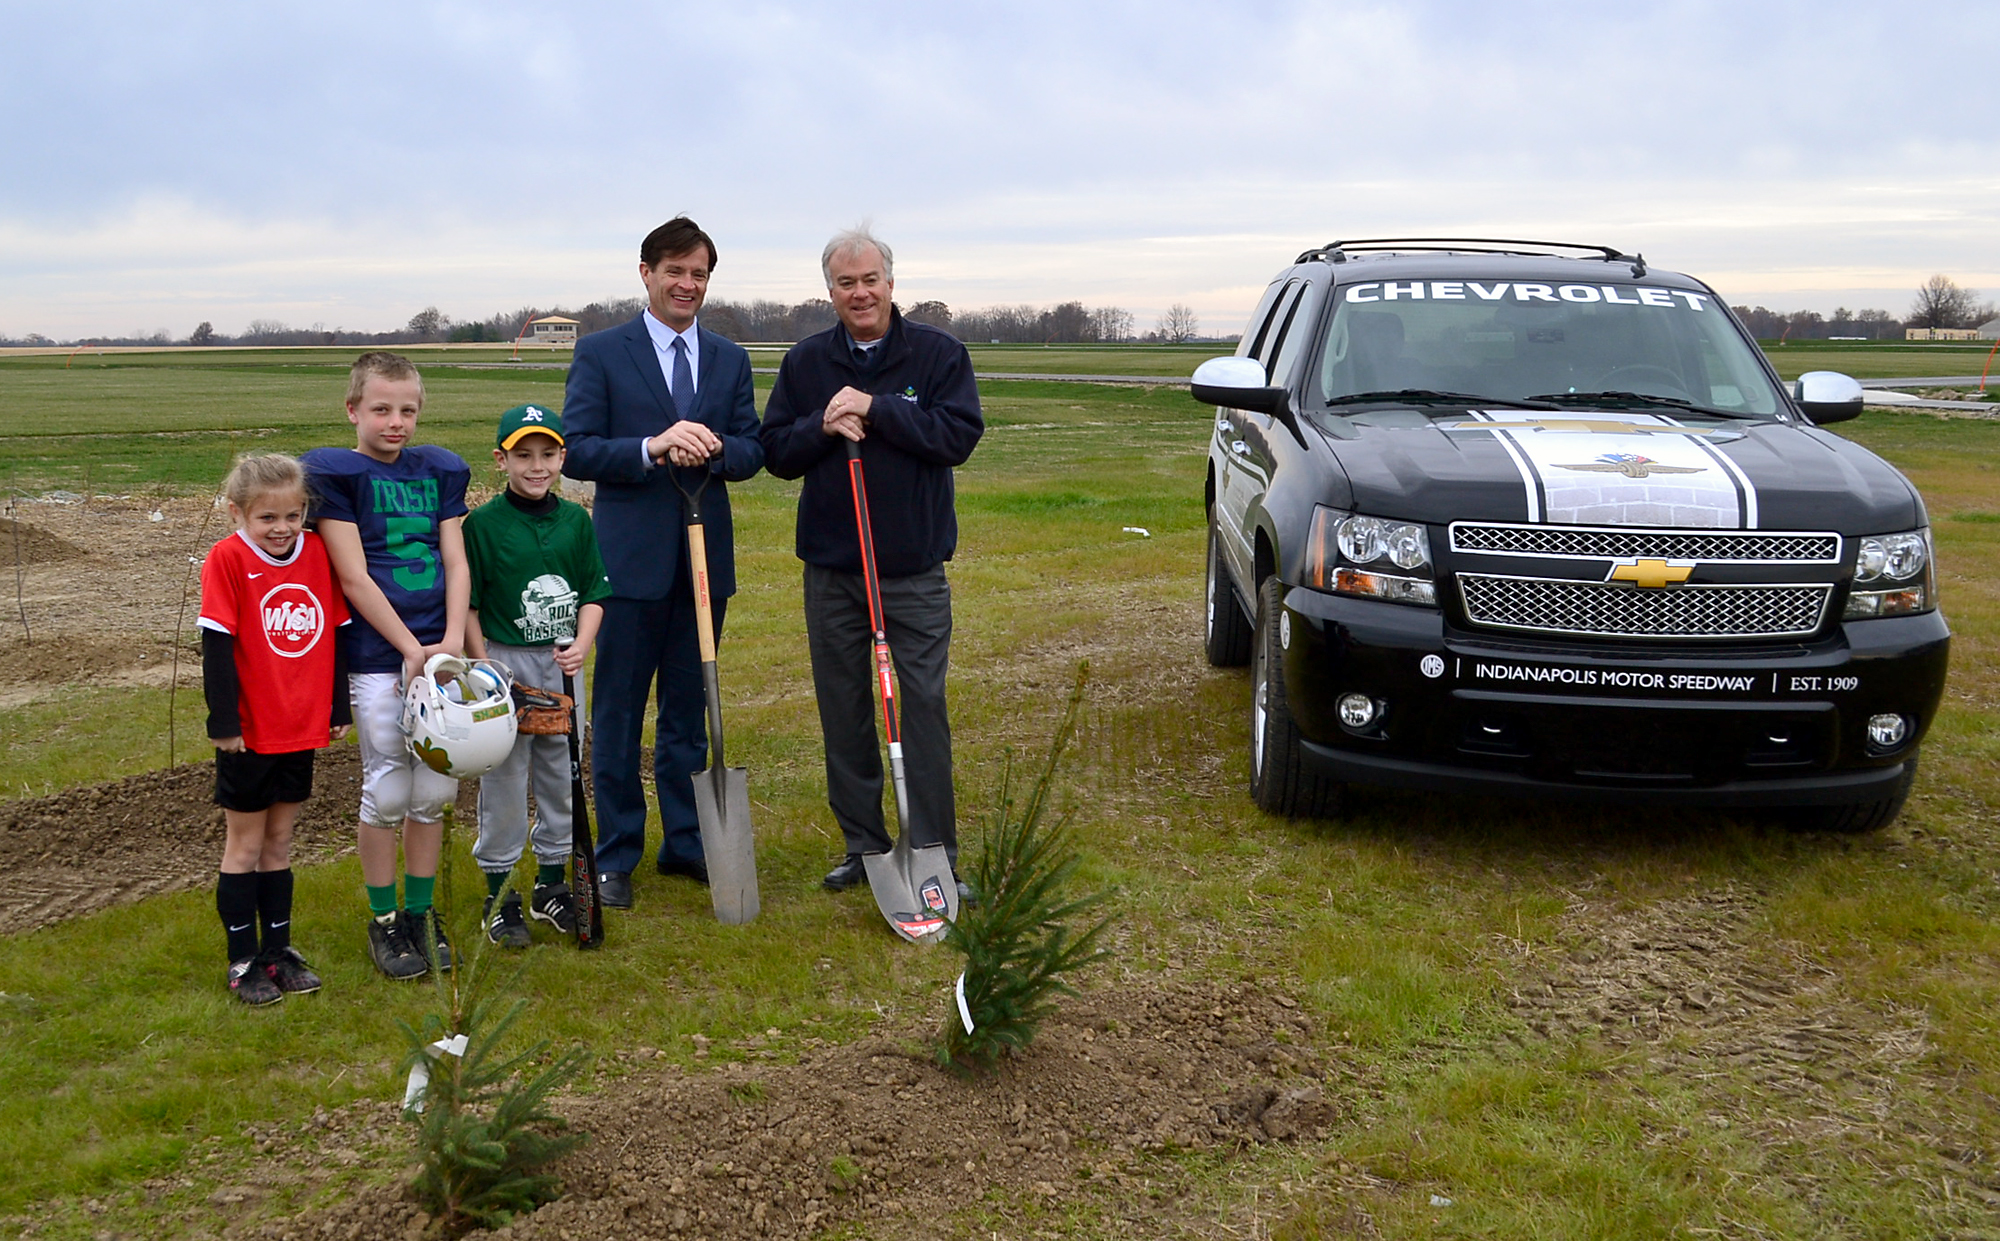 Players from Westfield Youth Soccer Association and Westfield Youth Sports Incorporated join IMS President Doug Boles and Westfield Mayor Andy Cook for the planting of trees at Grand Park. (Submitted photo)